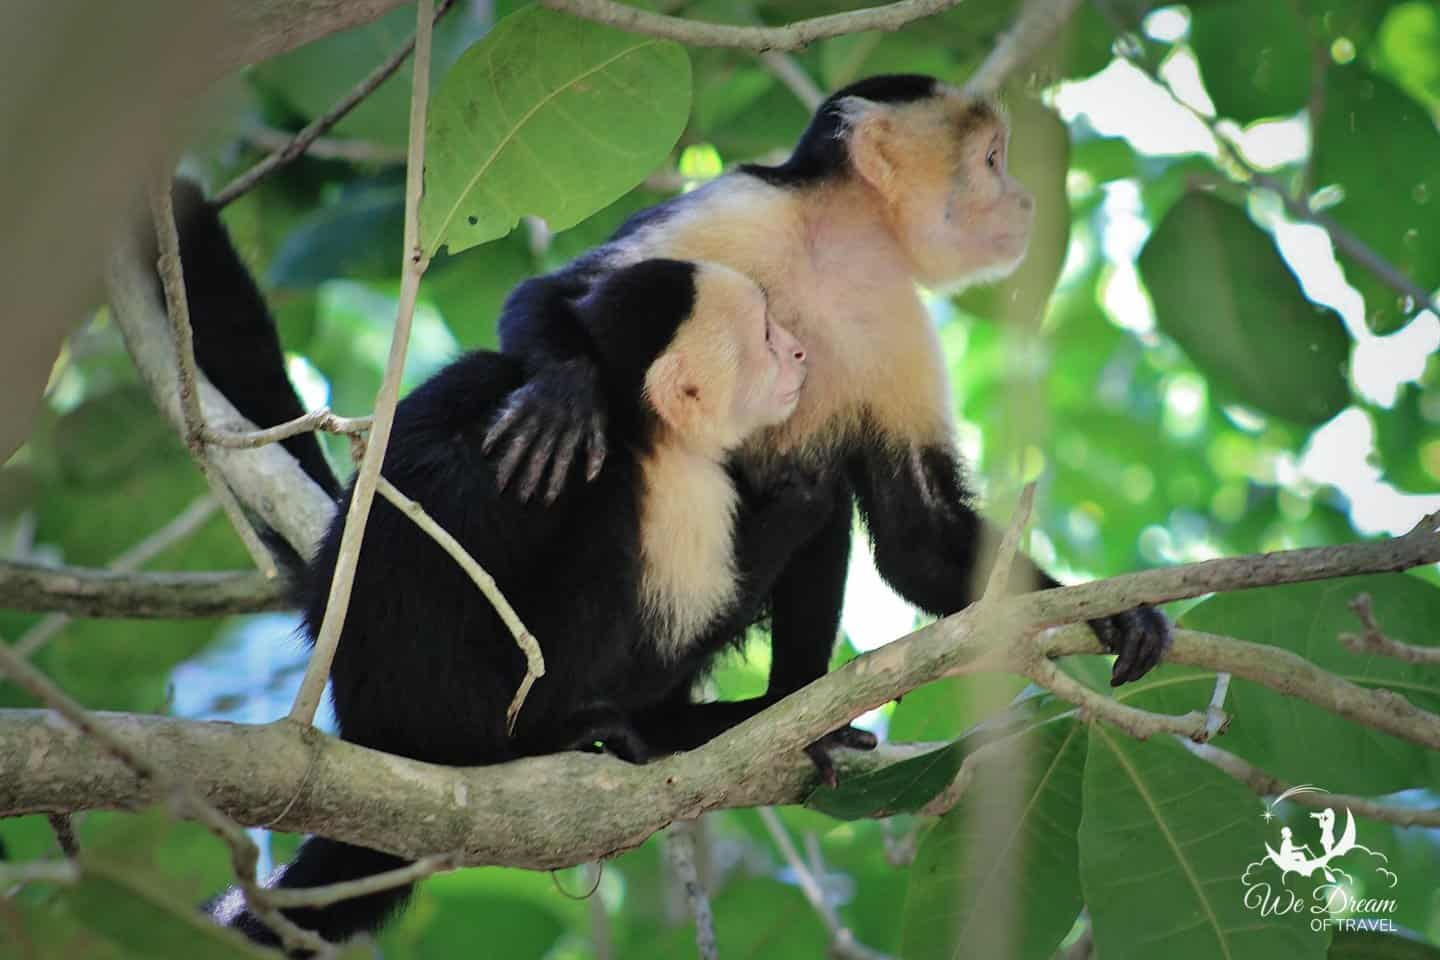 Two monkeys share an embrace in the jungle of Costa Rica.